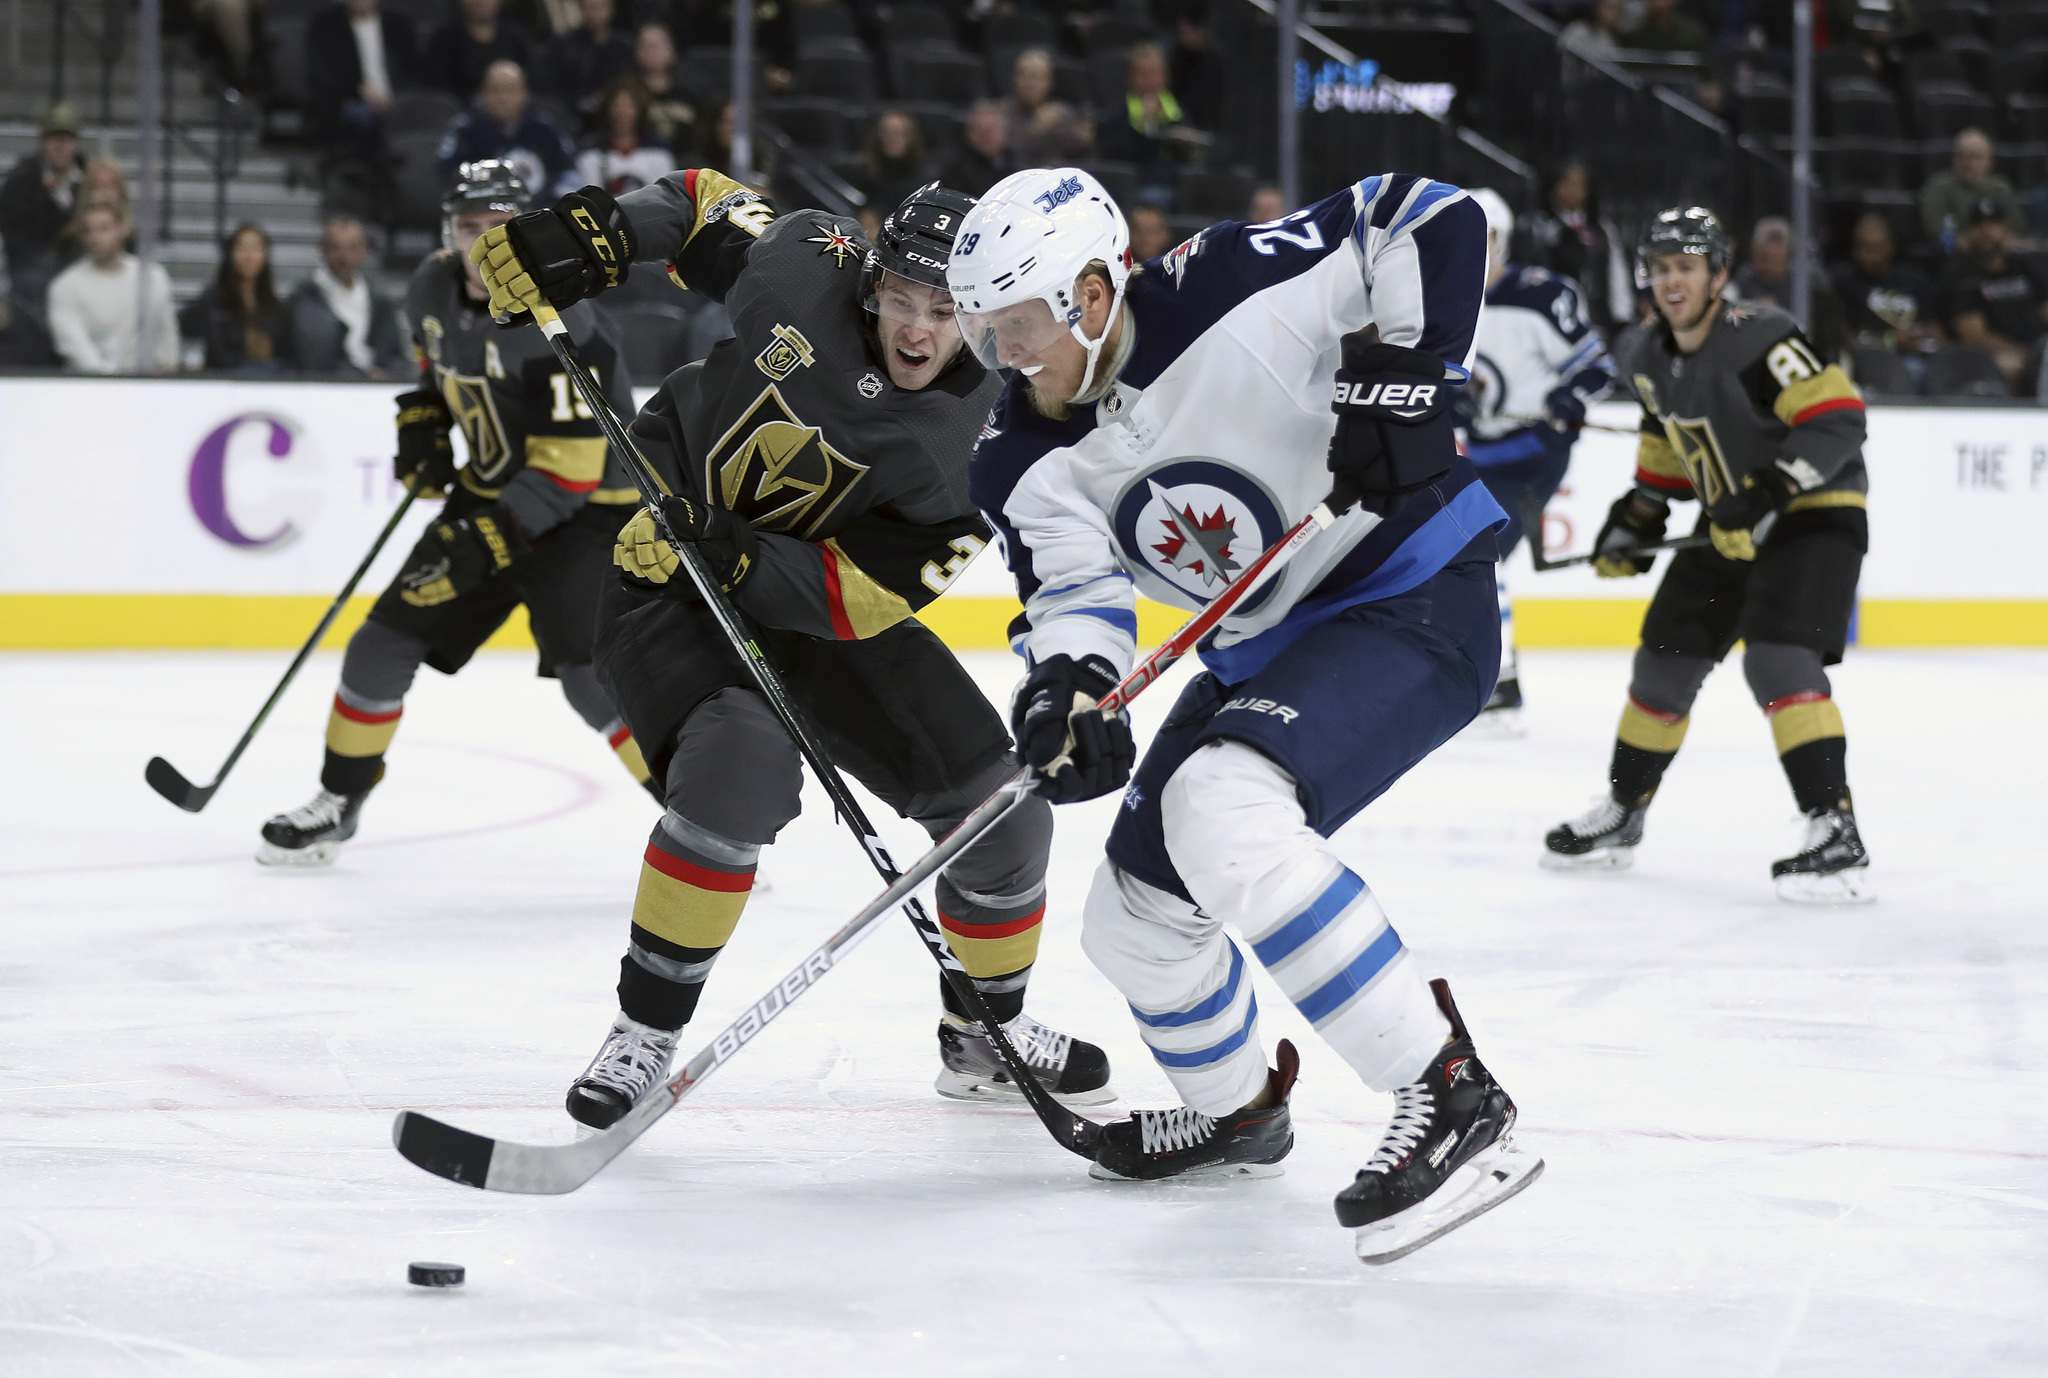 <p>Vegas Golden Knights&#39; Brayden McNabb and Winnipeg Jets&#39; Patrik Laine during first period NHL action at T-Mobile Arena, in Las Vegas, Friday, November 10, 2017.</p>